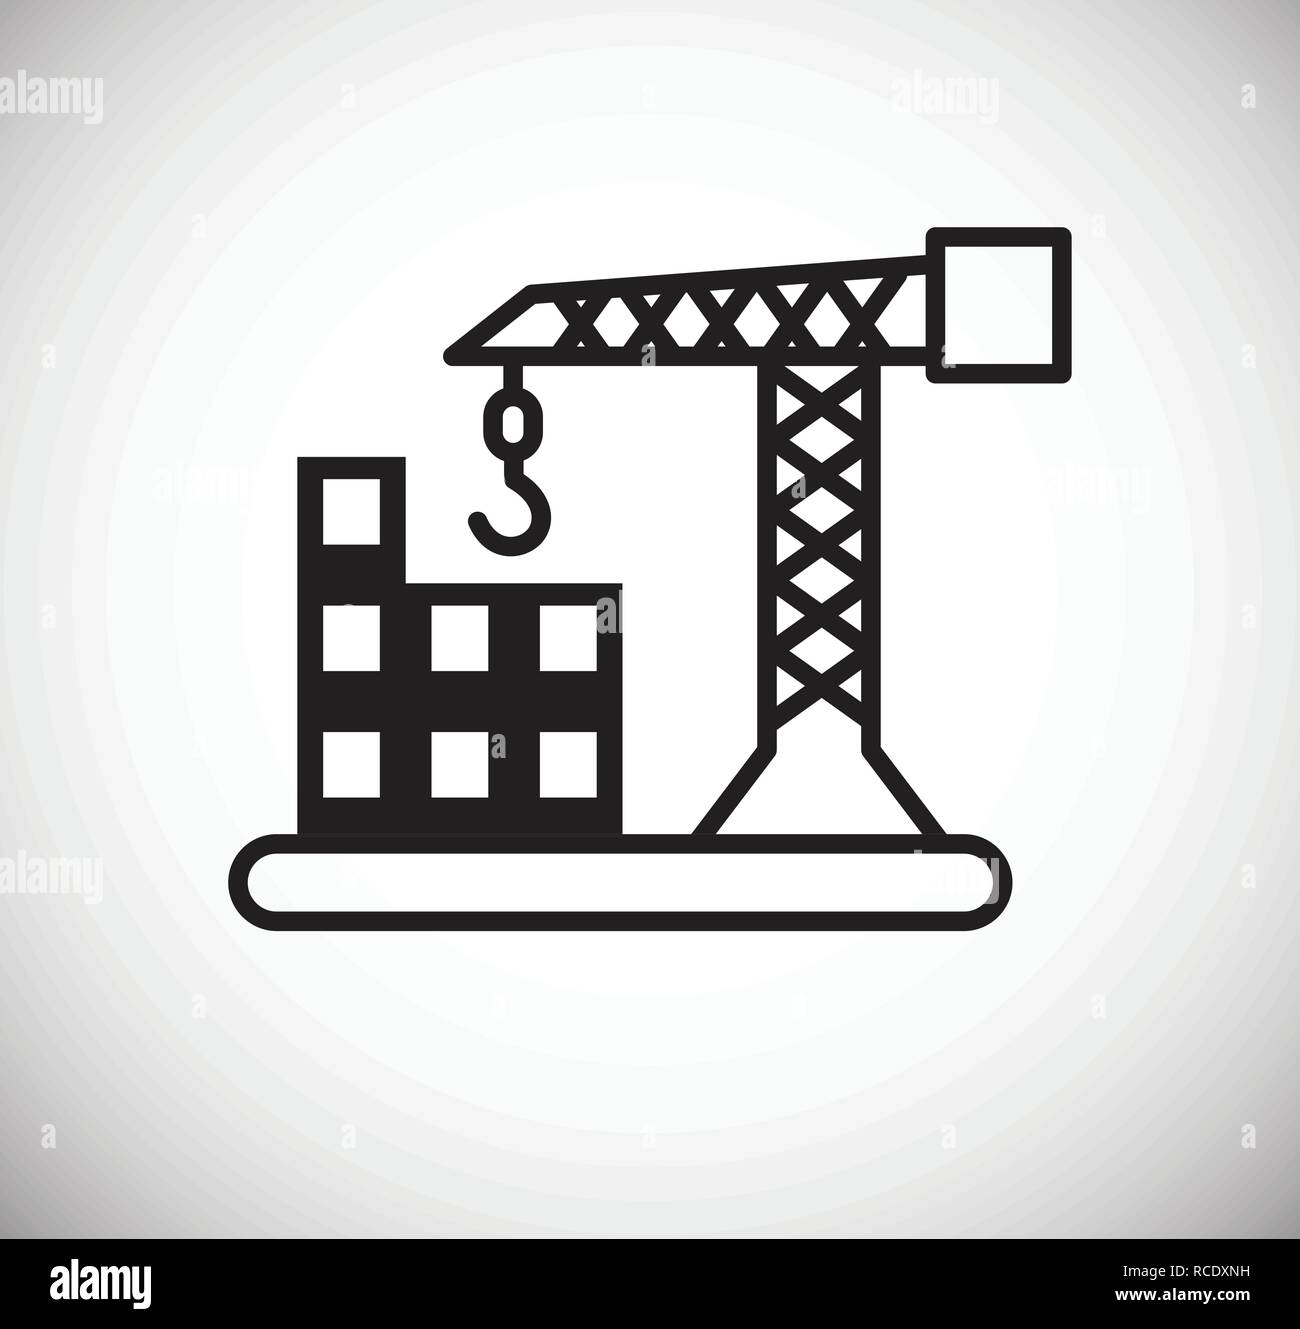 Construction icon on white background for graphic and web